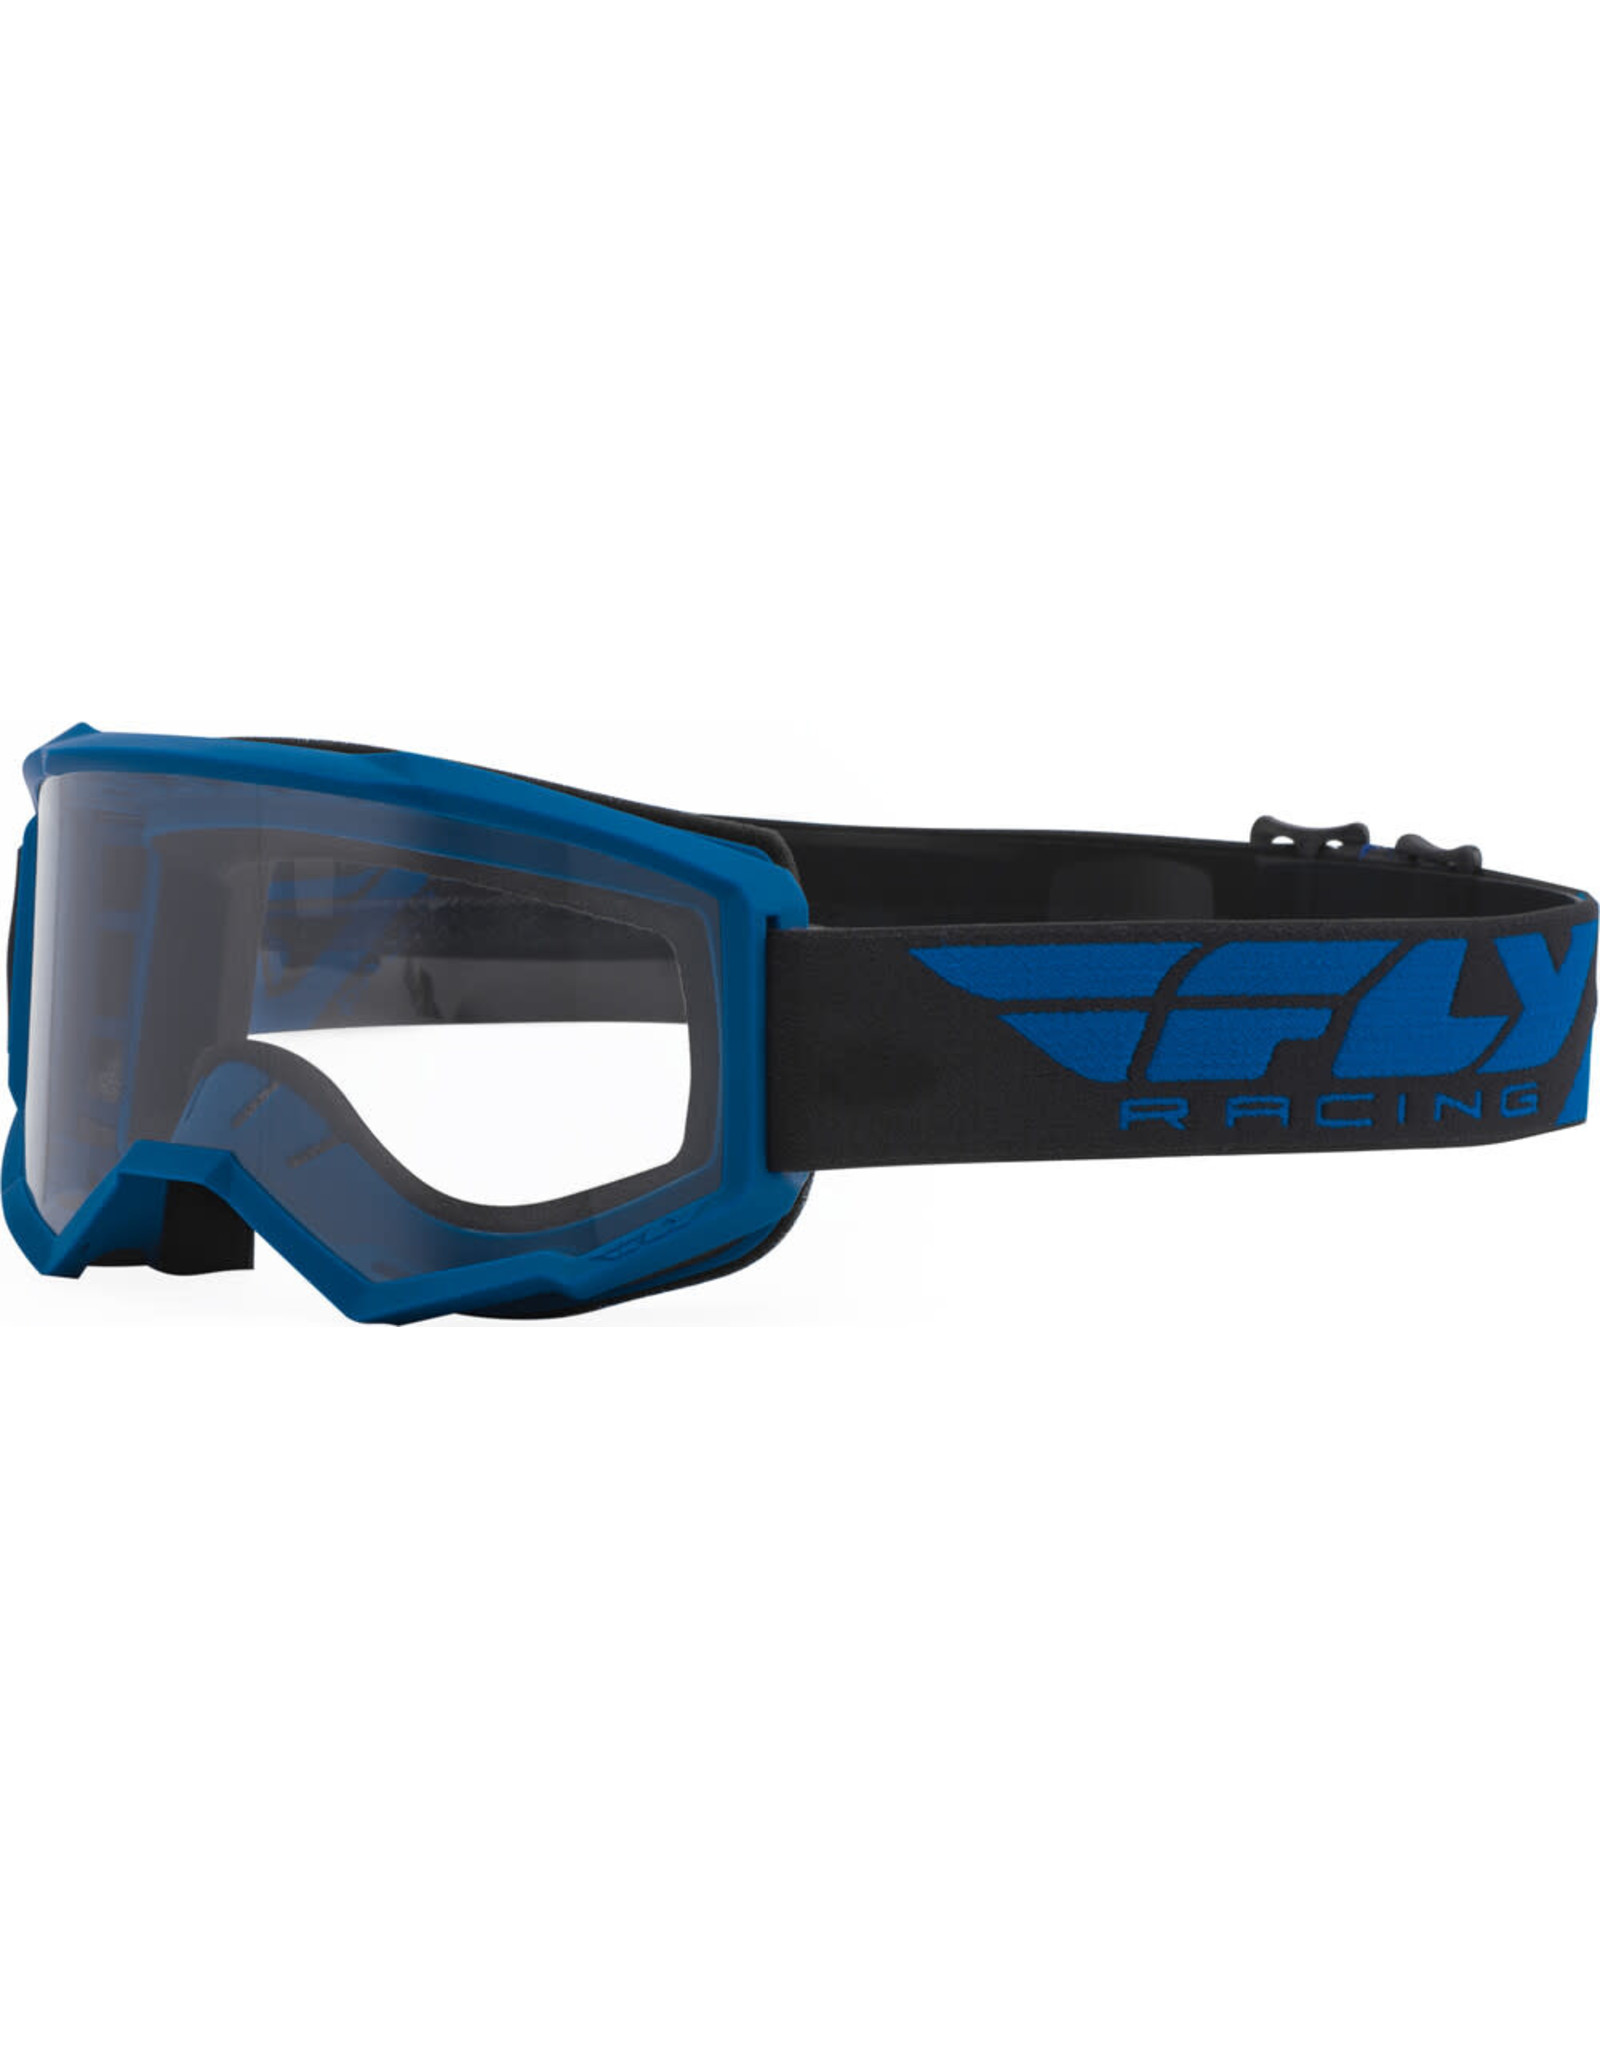 FLY RACING Fly Racing Focus Goggle Blue w/ Clear Lens